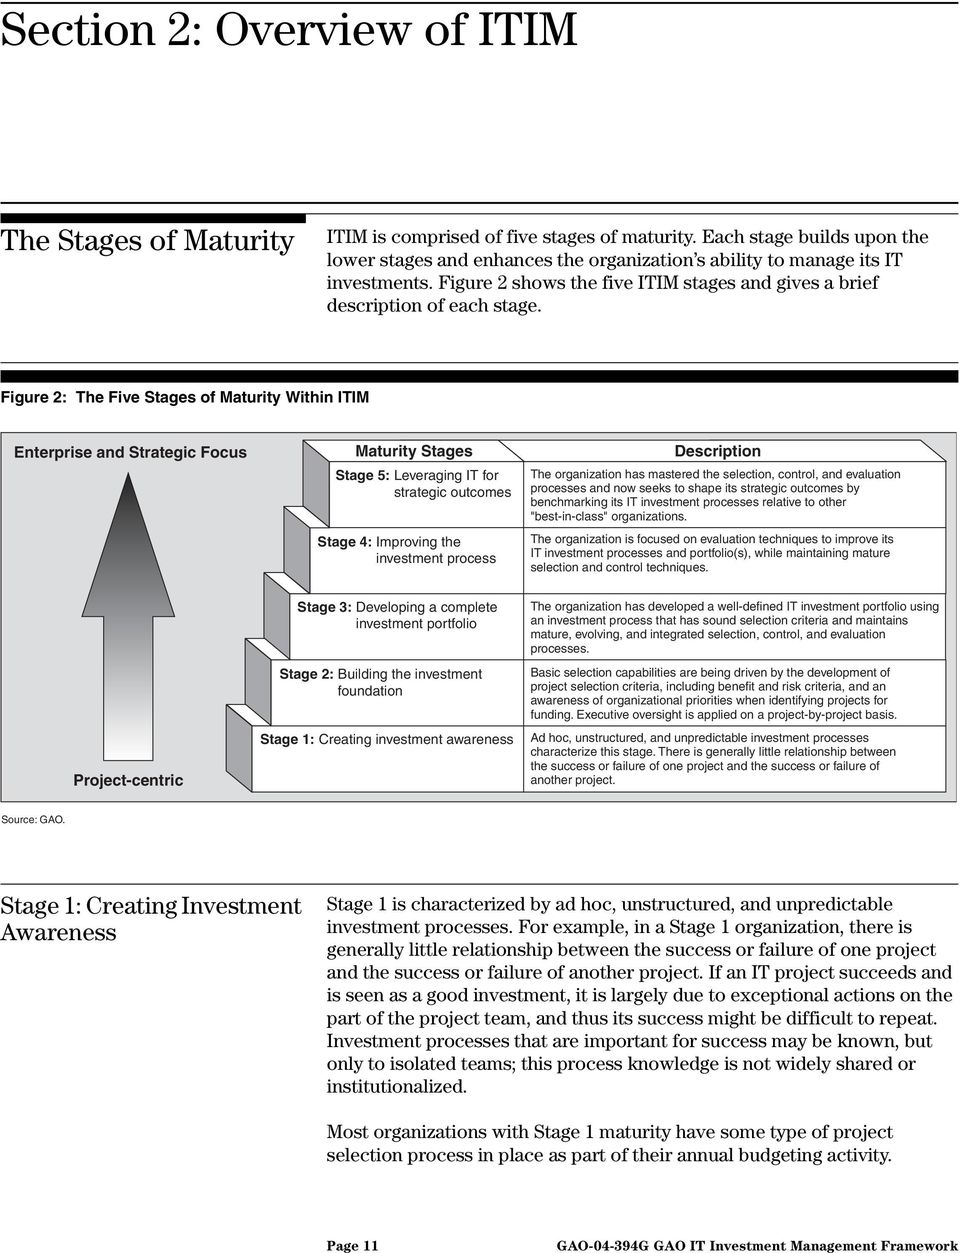 Figure 2: The Five Stages of Maturity Within ITIM Enterprise and Strategic Focus Maturity Stages Stage 5: Leveraging IT for strategic outcomes Stage 4: Improving the investment process Description